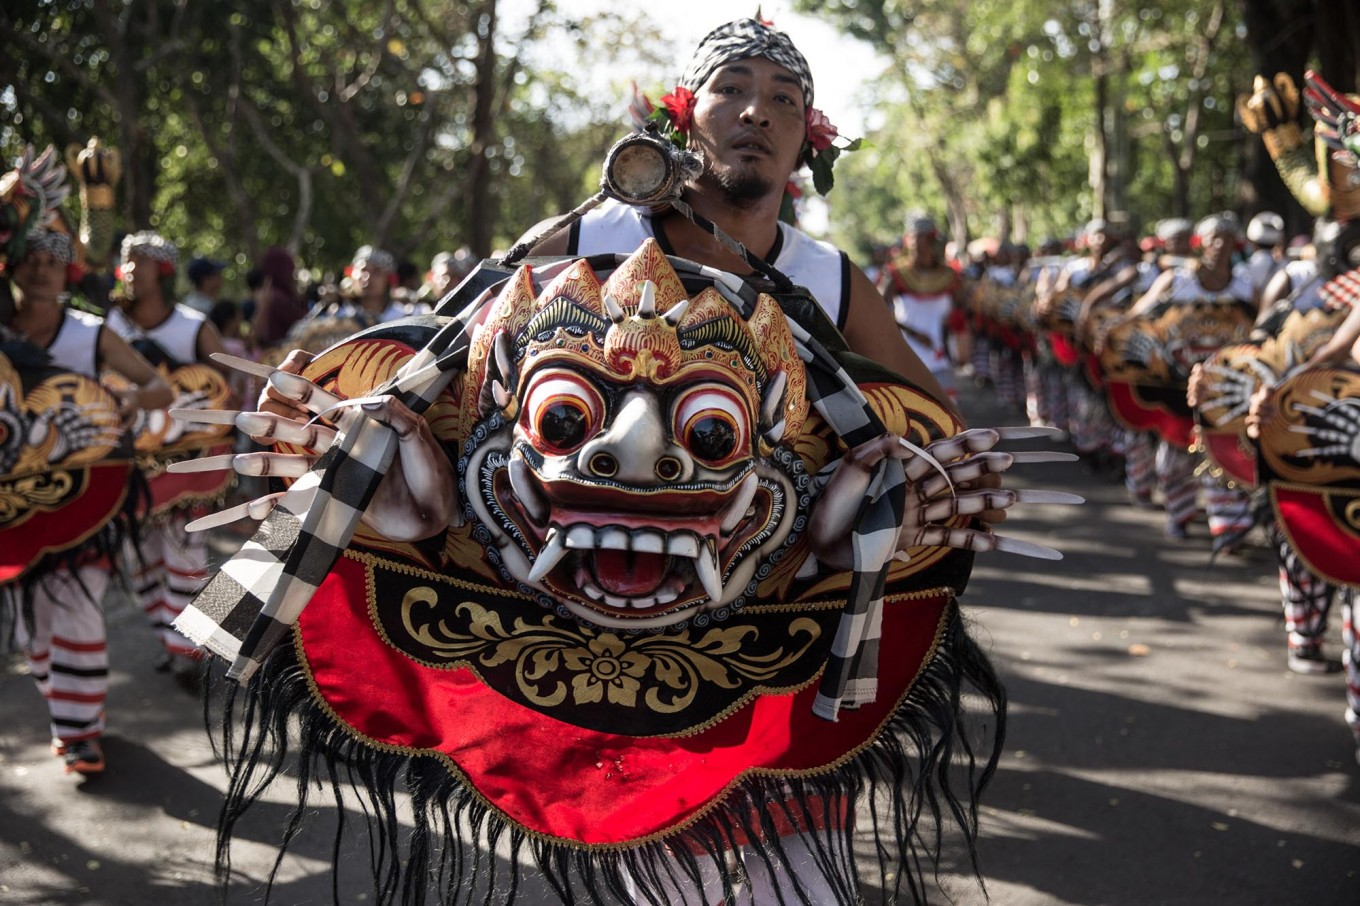 Balinese artists perform the Okokan dance during the opening of the 39th Bali Art Festival at the Bajra Sandhi Monument in Denpasar. JP/Agung Parameswara